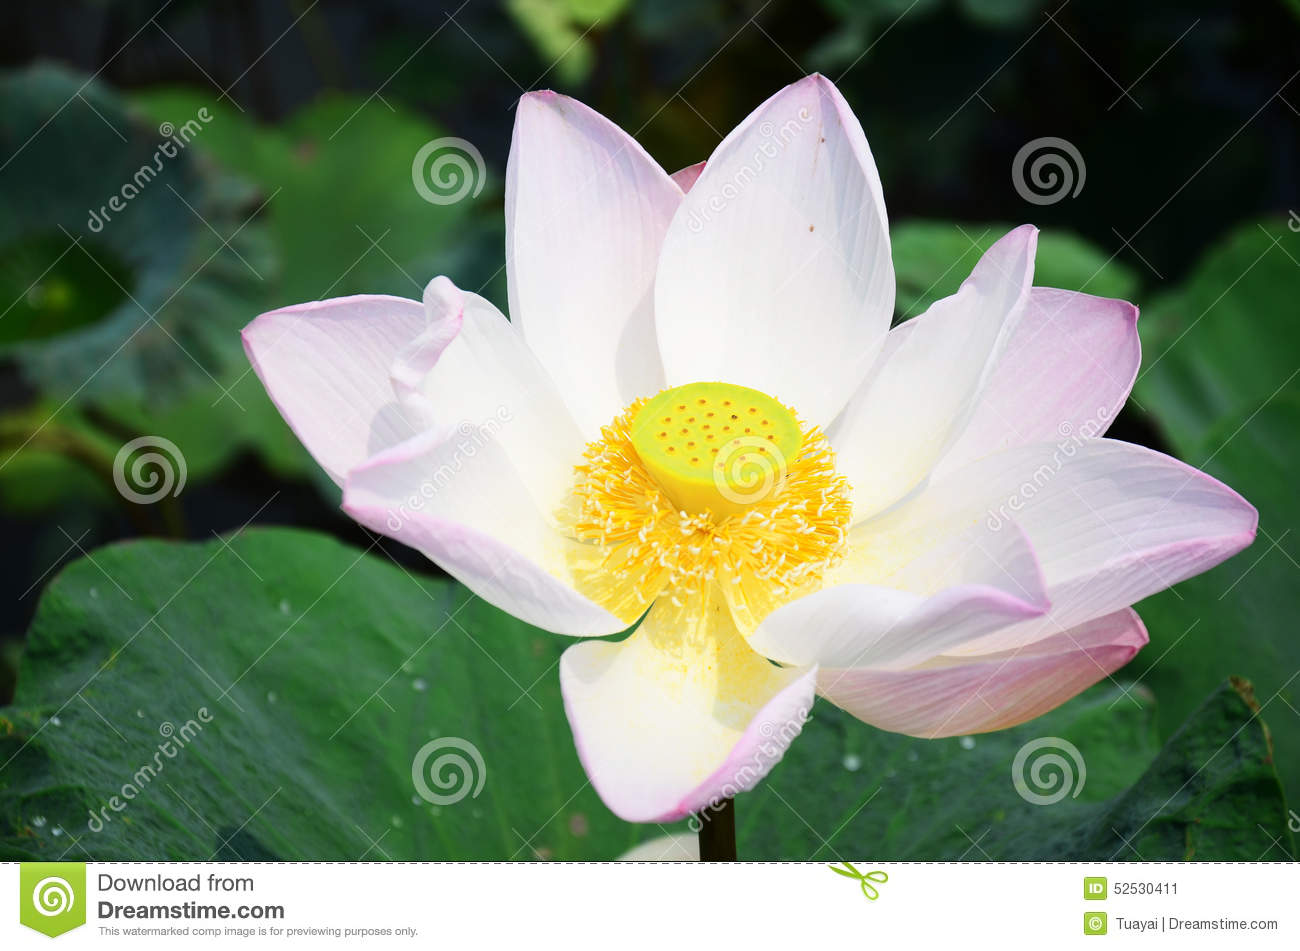 Lotus flower or water lilly blossom in pond stock image image of the lotus flower is an aquatic perennial sometimes mistaken for the water lily the lotus has a distinctively different structure izmirmasajfo